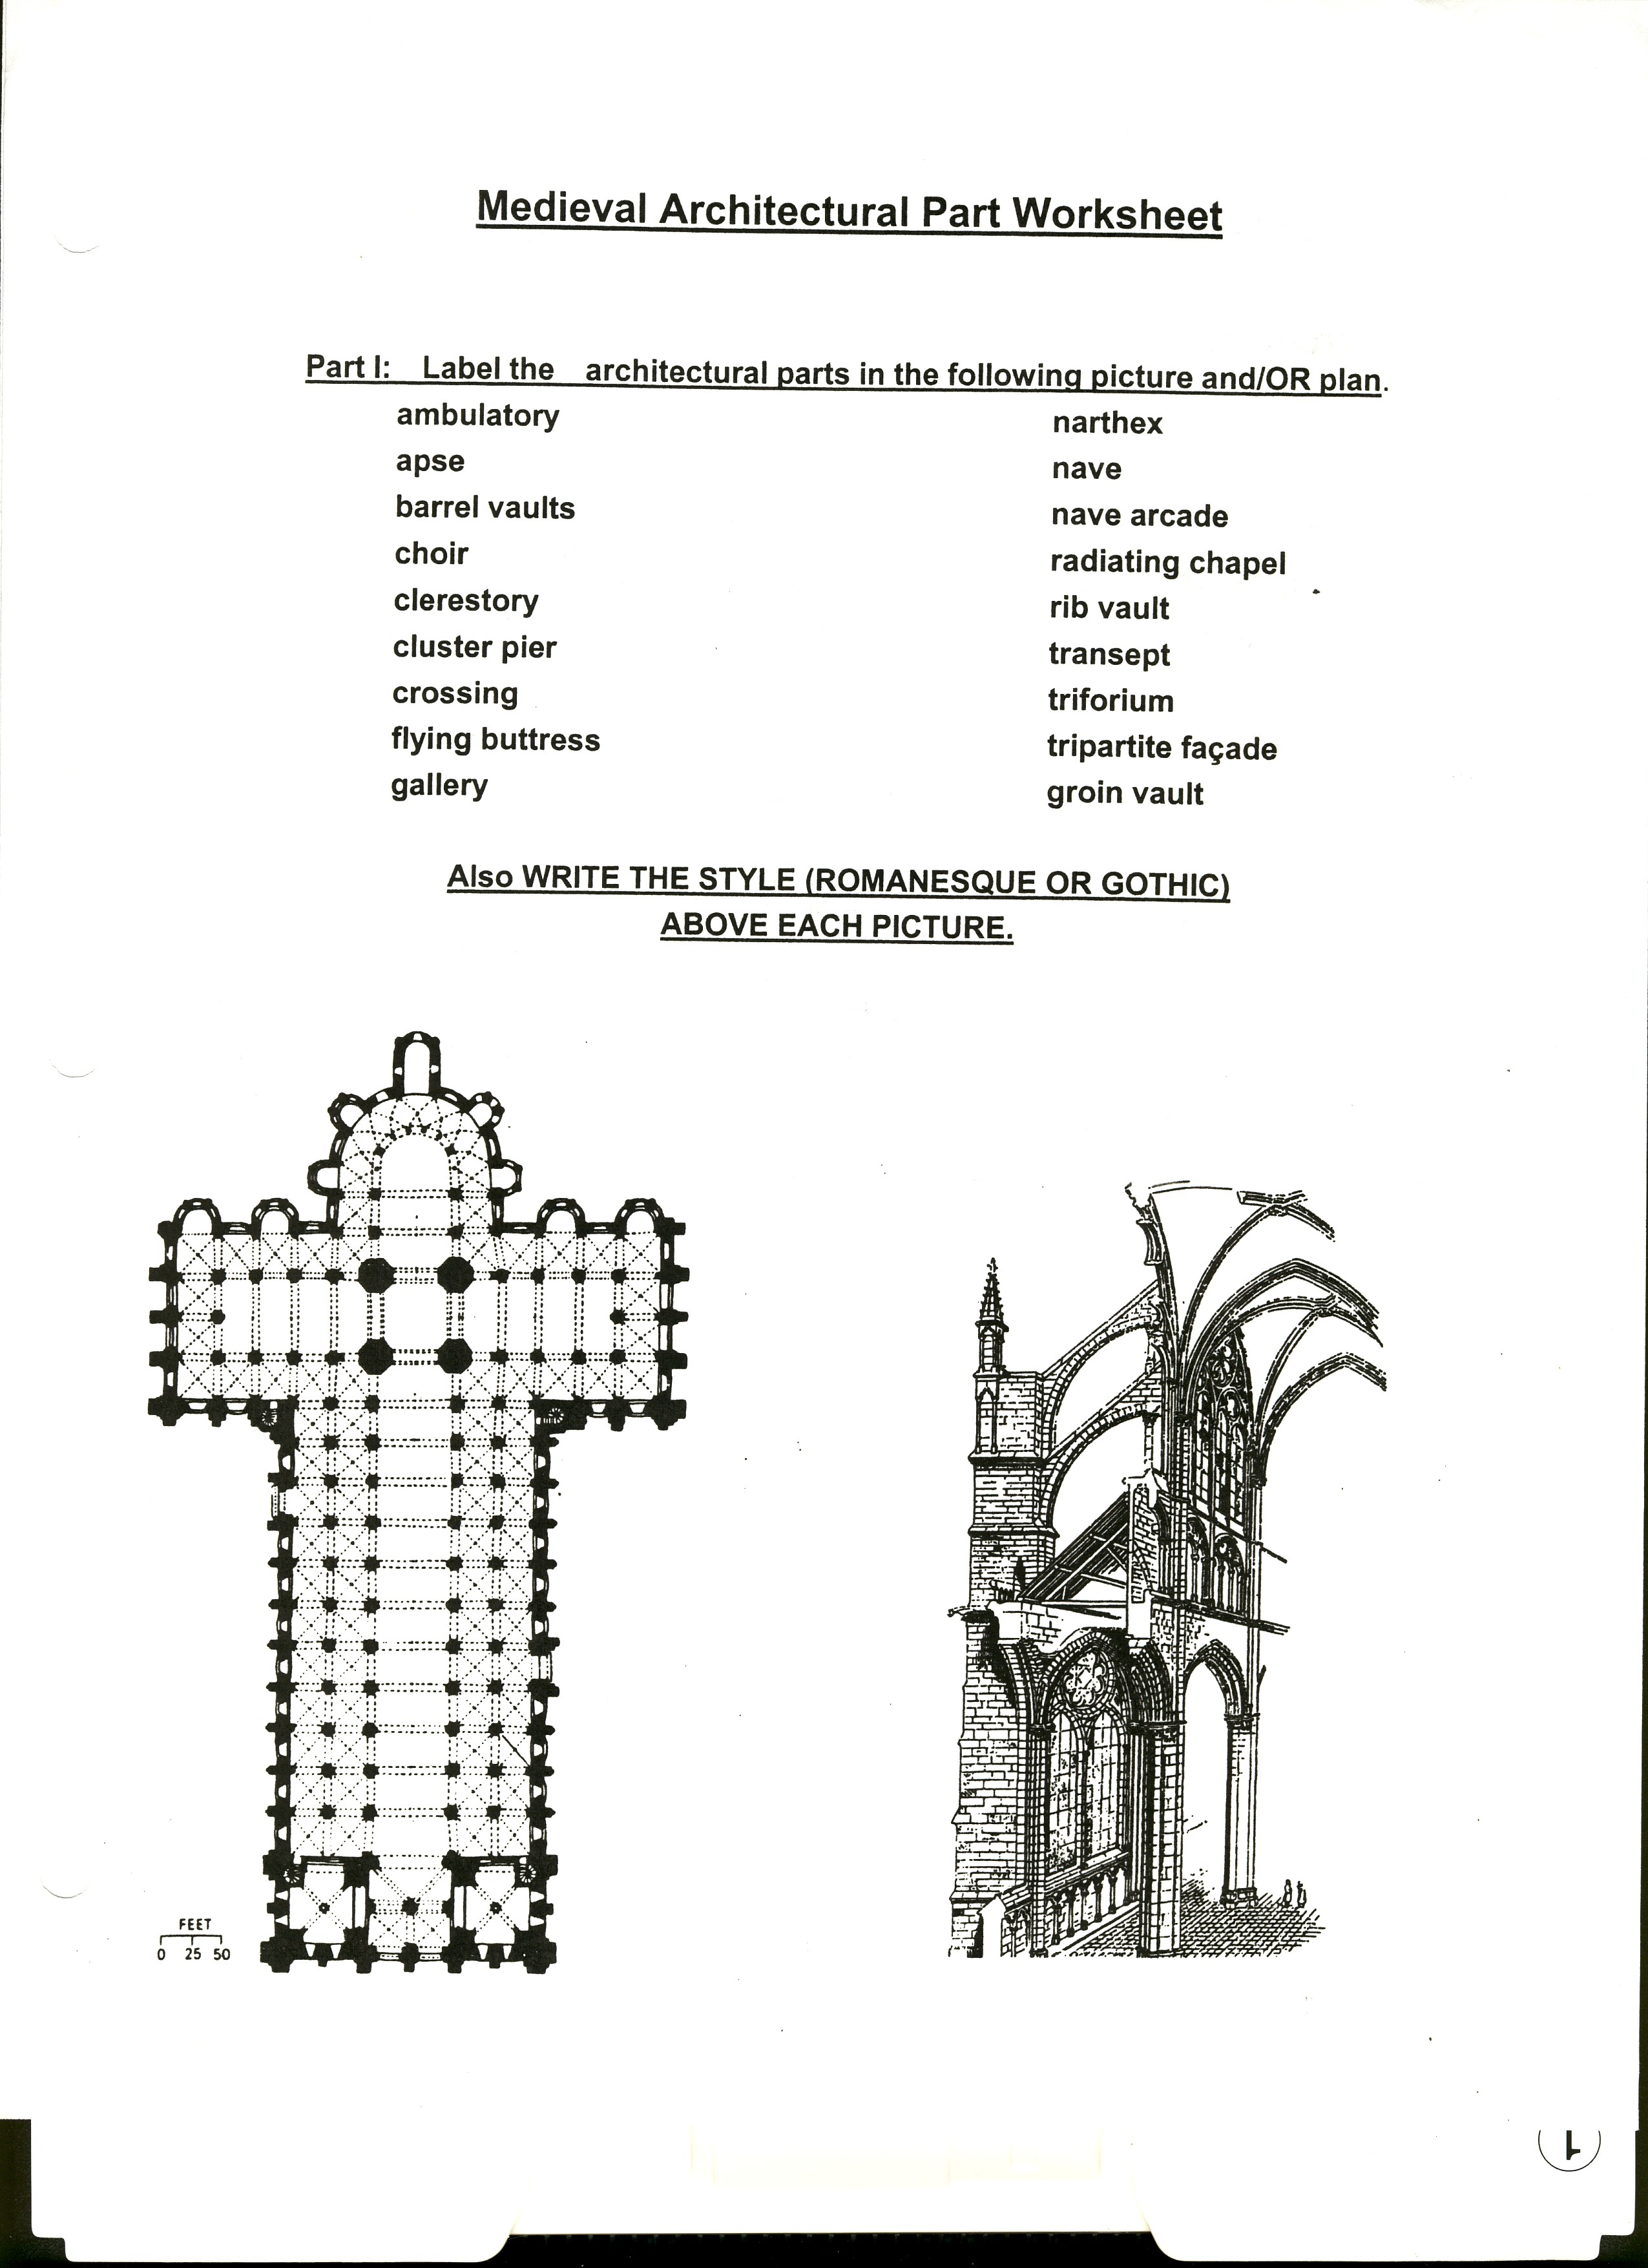 Worksheet To Help You Review The Architectural Parts Of Medieval Romanesque And Gothic Churches